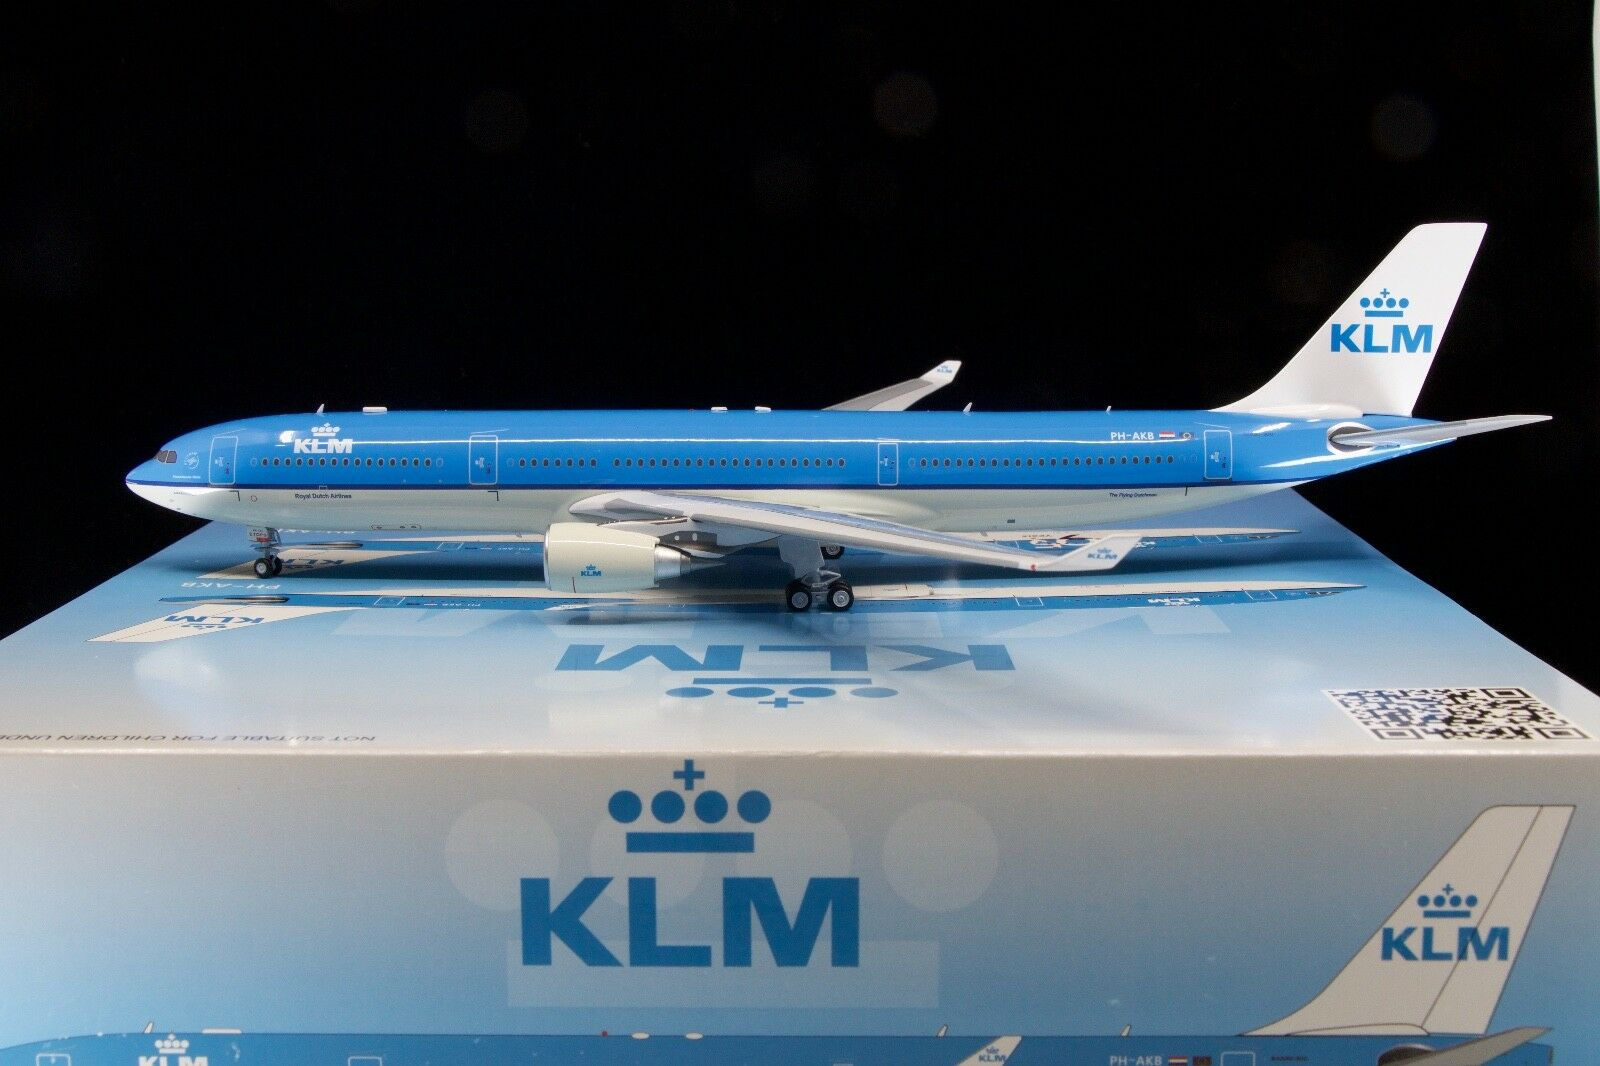 Inflight200 1 200 KLM A330-300 PH-AKB